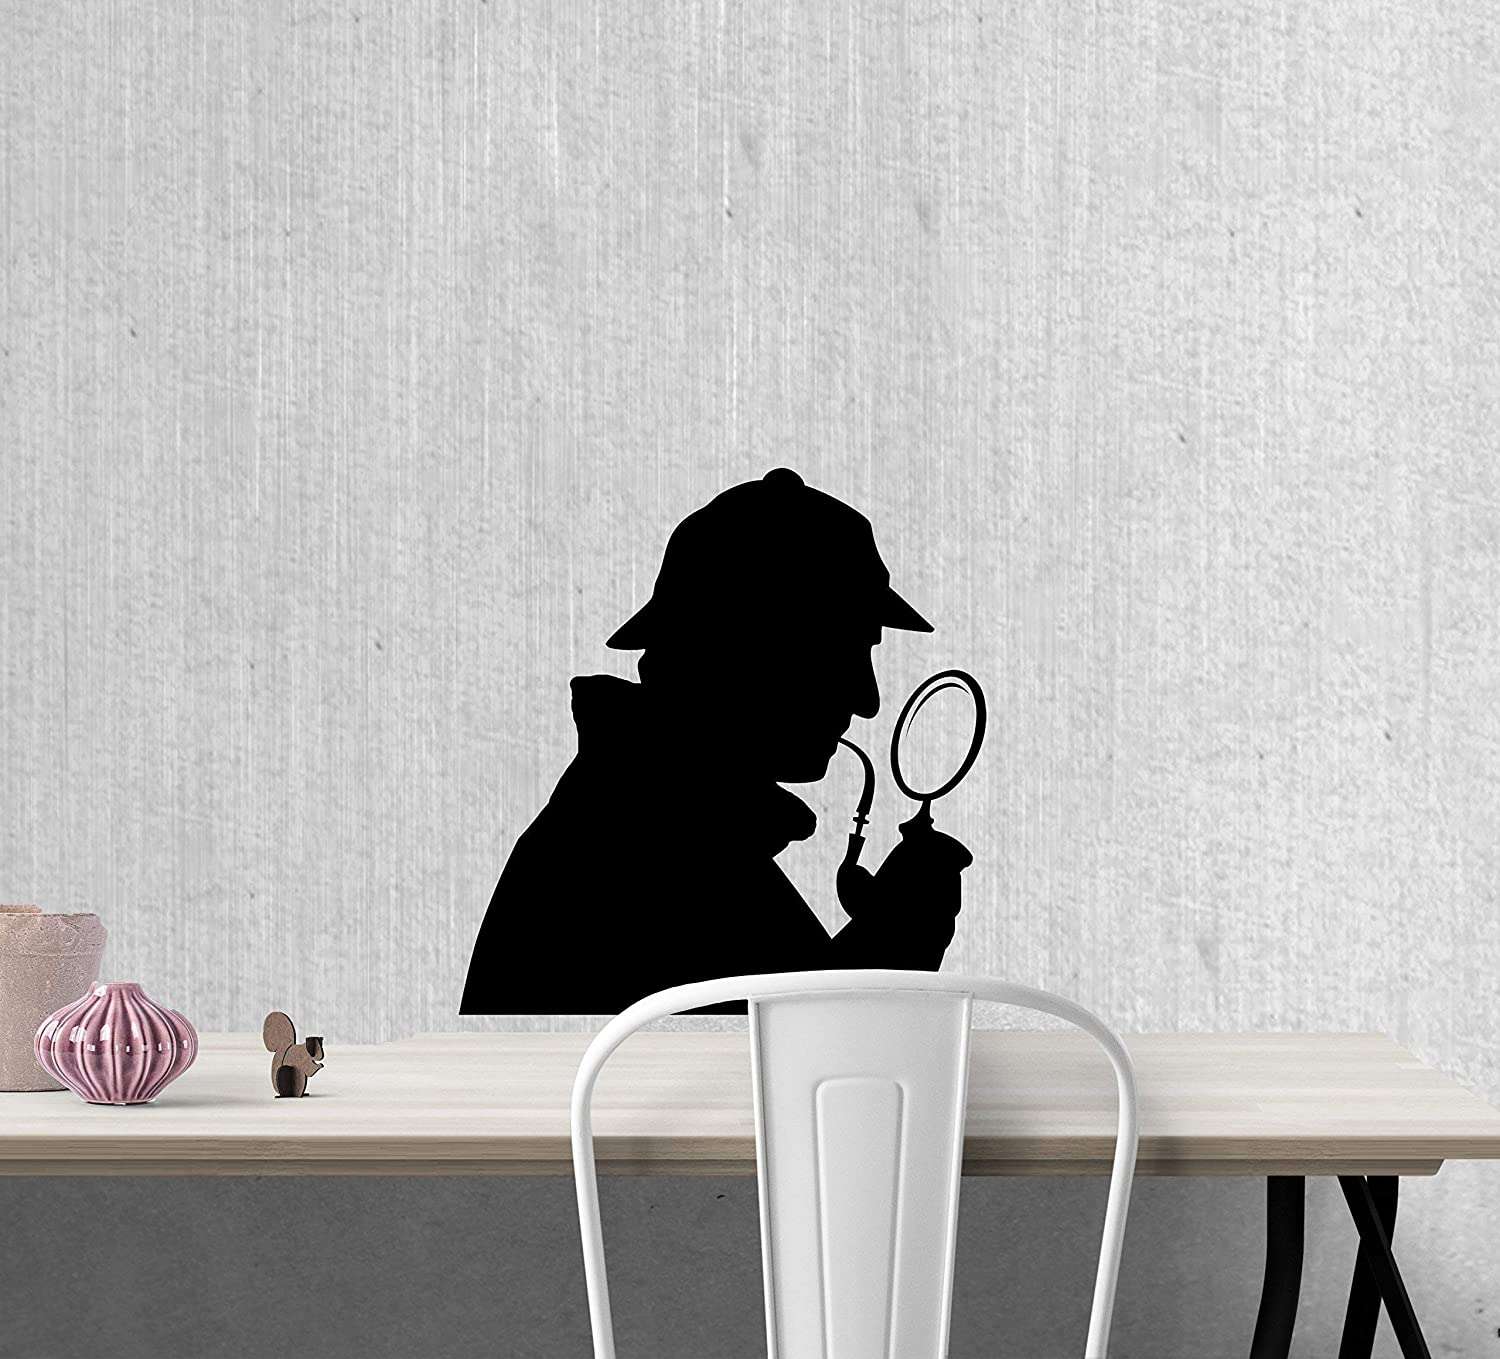 11 Inches Tall Sherlock Holmes Mystery Book Detective Silhouette Wall Decal